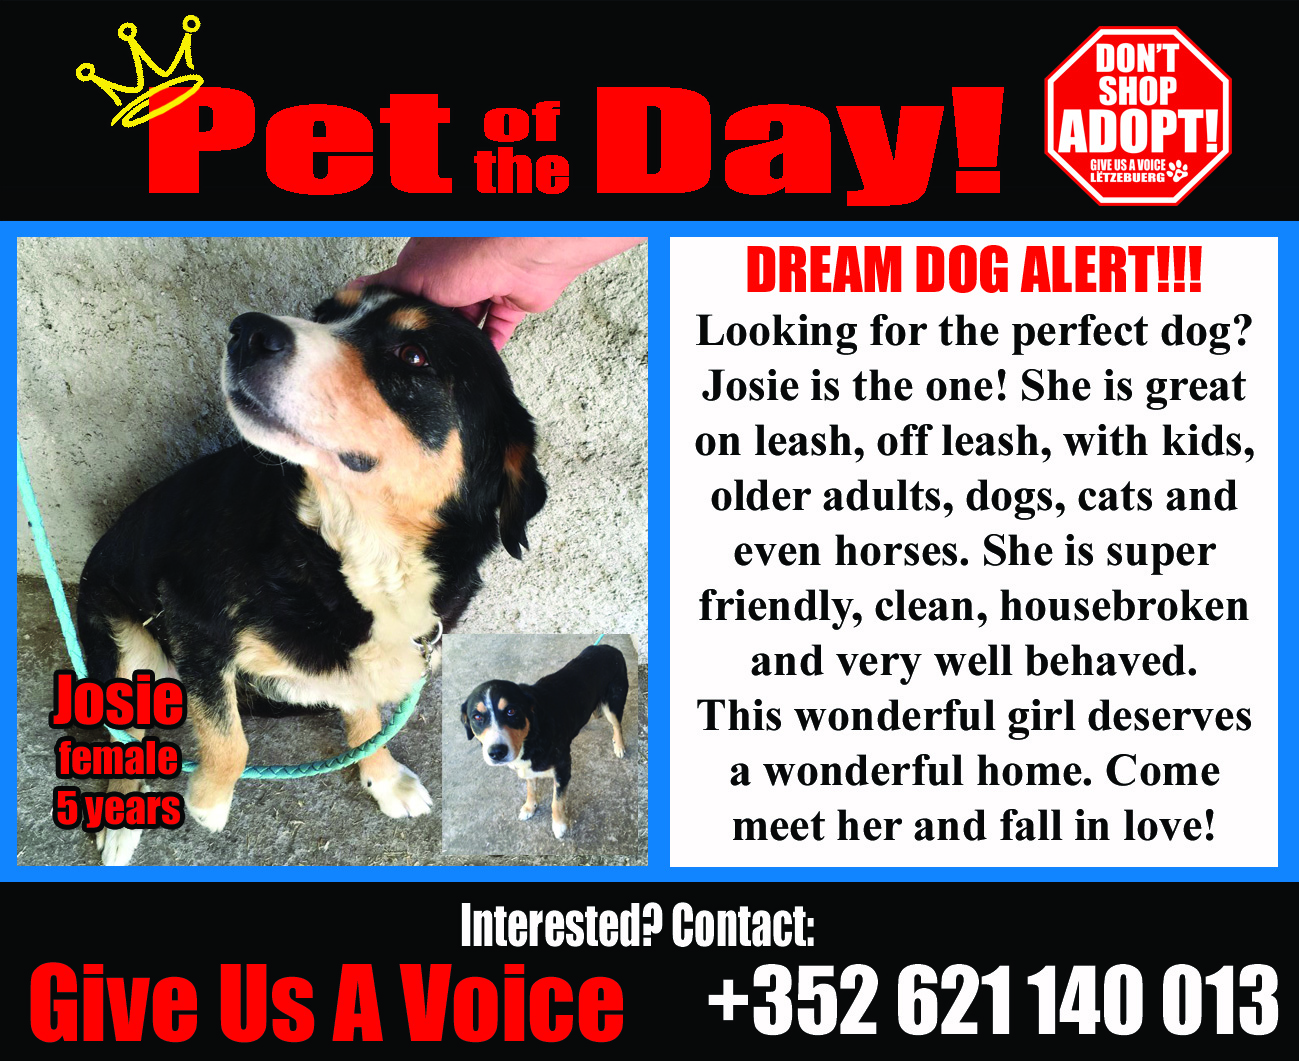 08-24-16 Pet of the Day